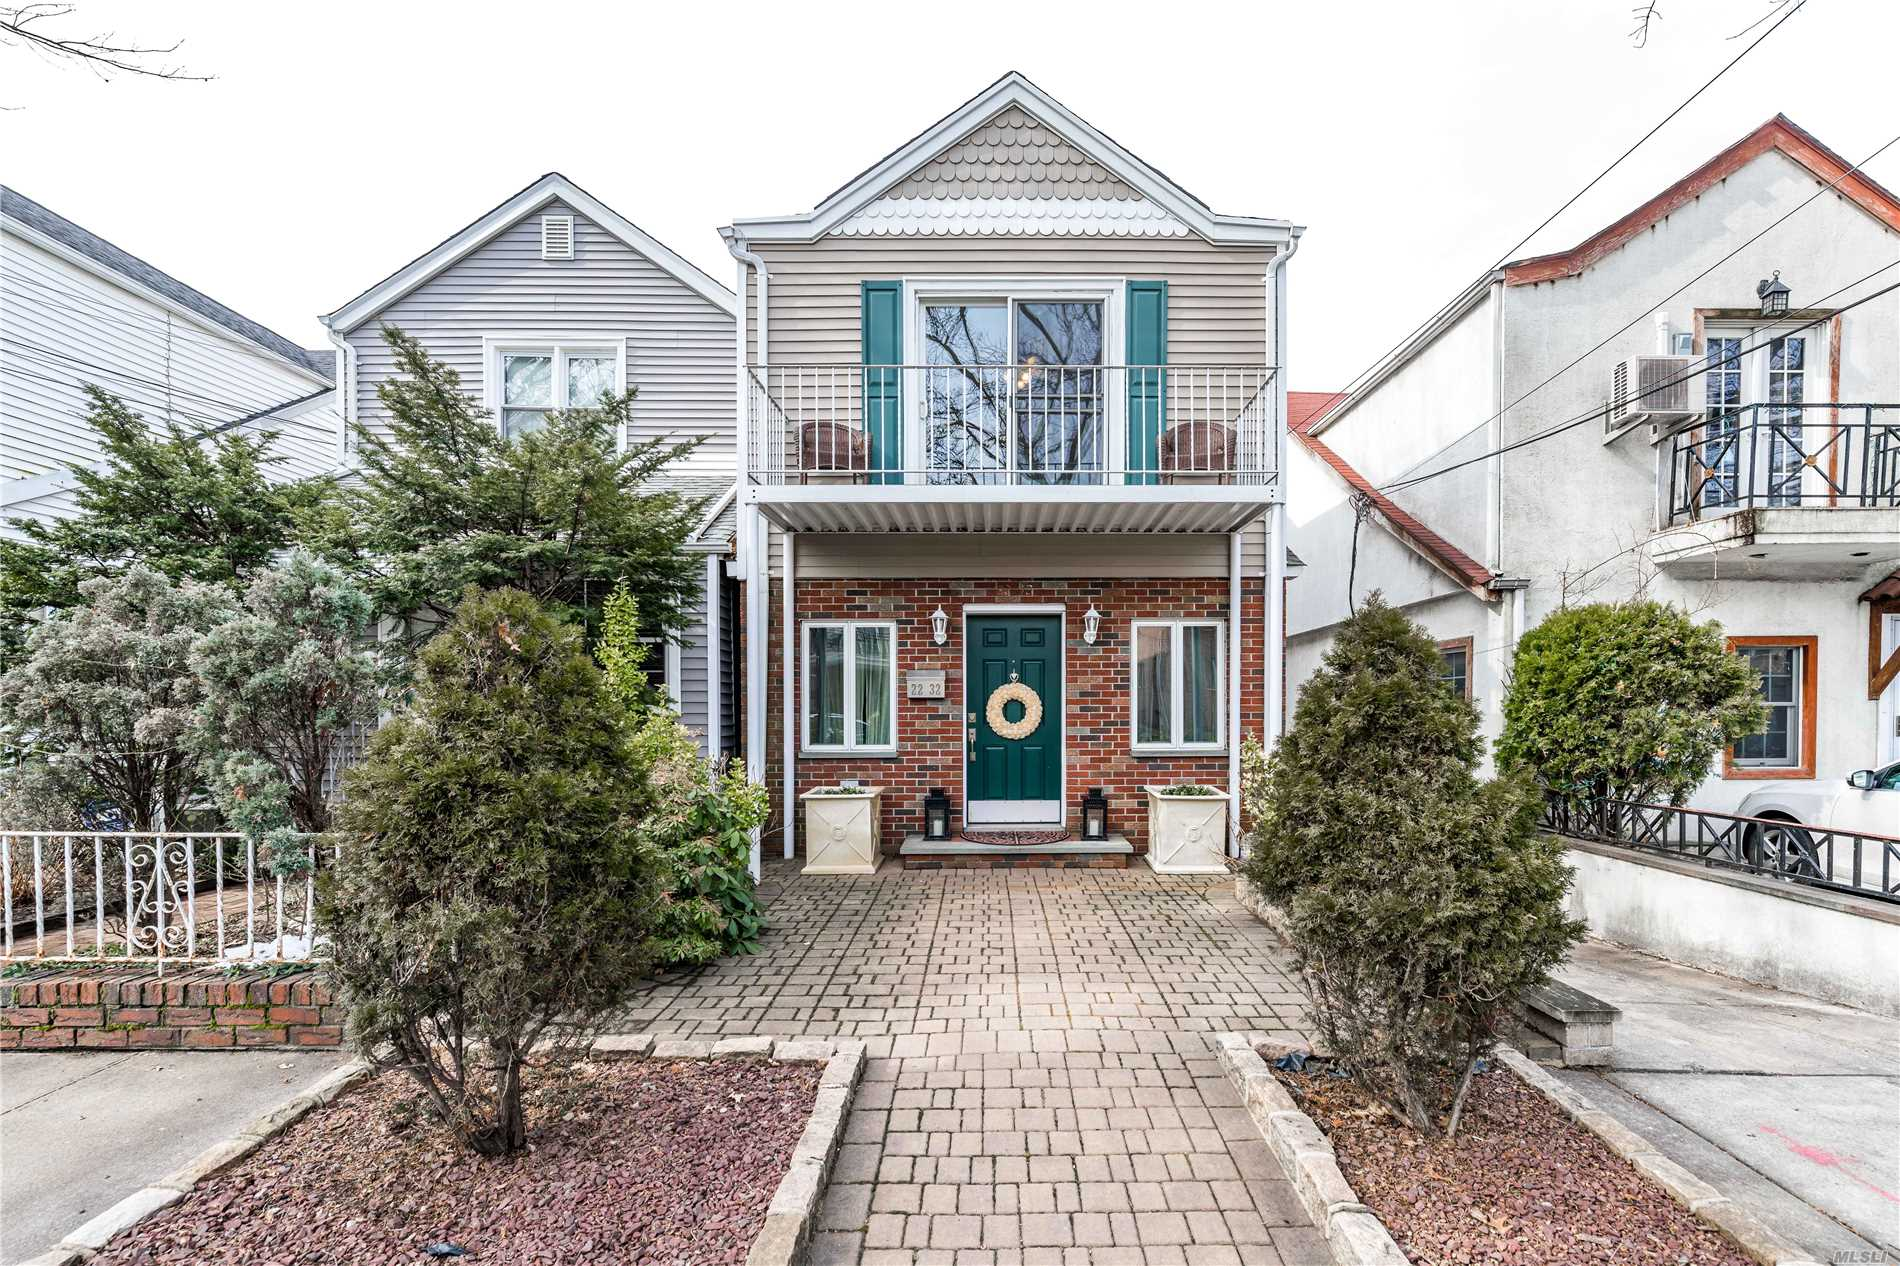 Move Right Into This Recently Renovated Detached Home Featuring Hardwood Floors Throughout, Large Master Br, New Stainless Steel Appliances, New Washer/Dryer And Many Designer Touches Throughout!